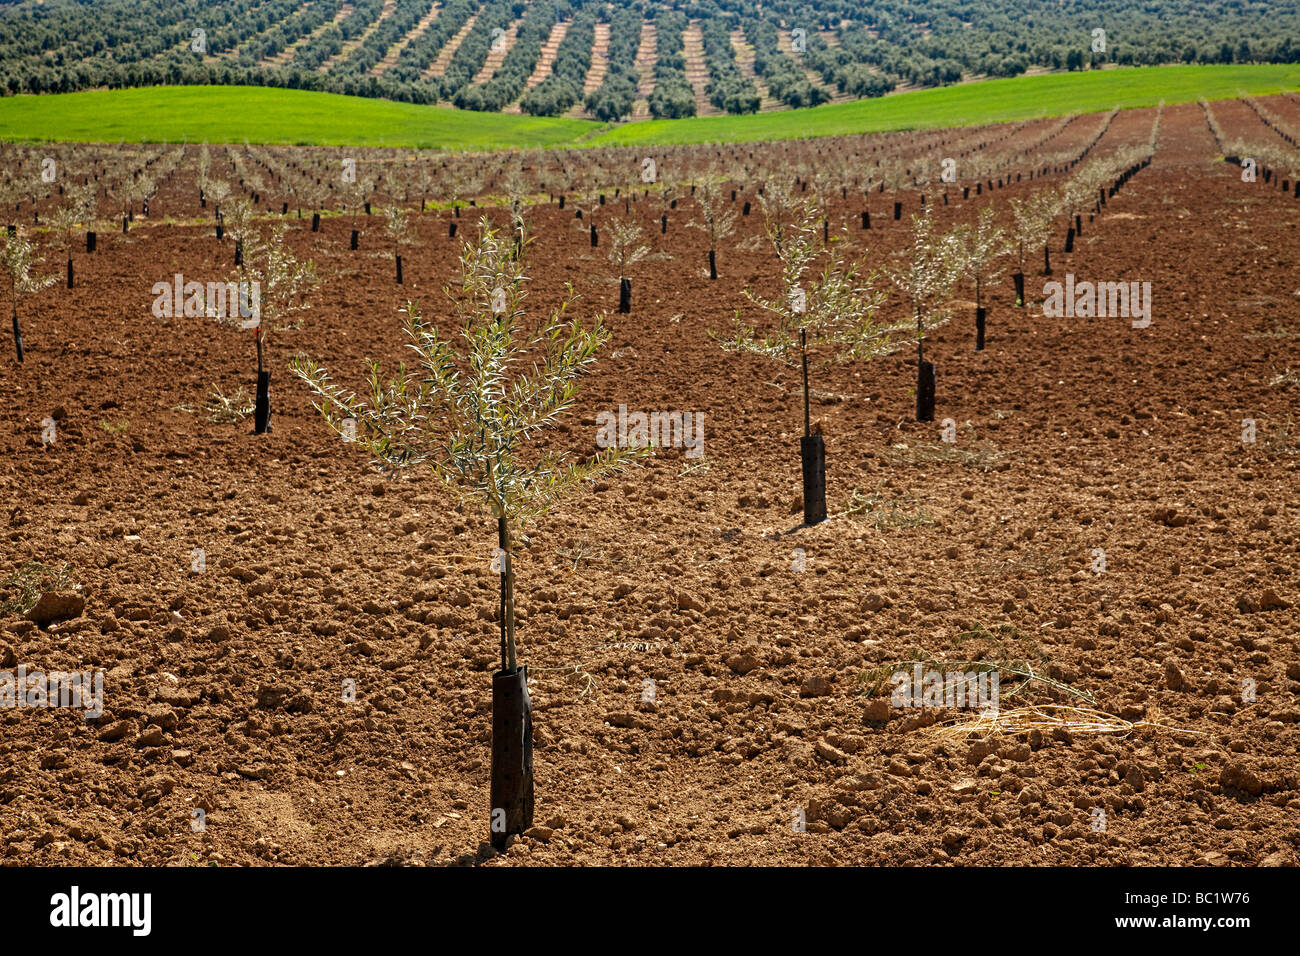 high density Olive grove in the region of Antequera Malaga Andalusia Spain - Stock Image